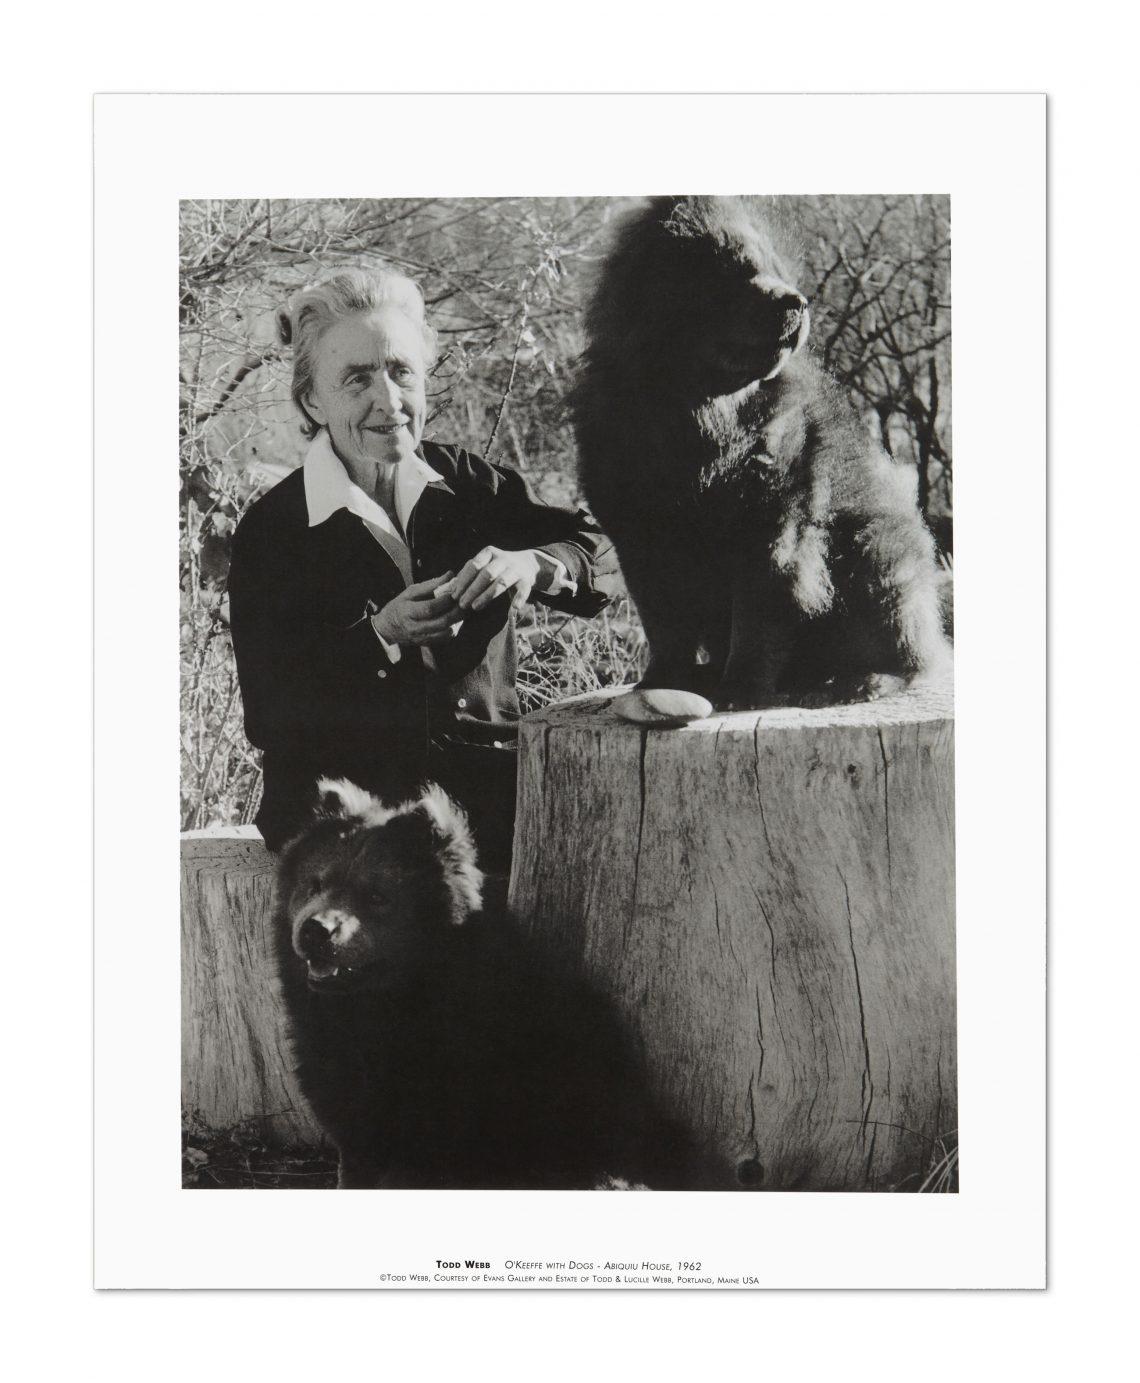 """""""O'Keeffe with Dogs"""", Todd Webb, Abiquiu House, 1962"""